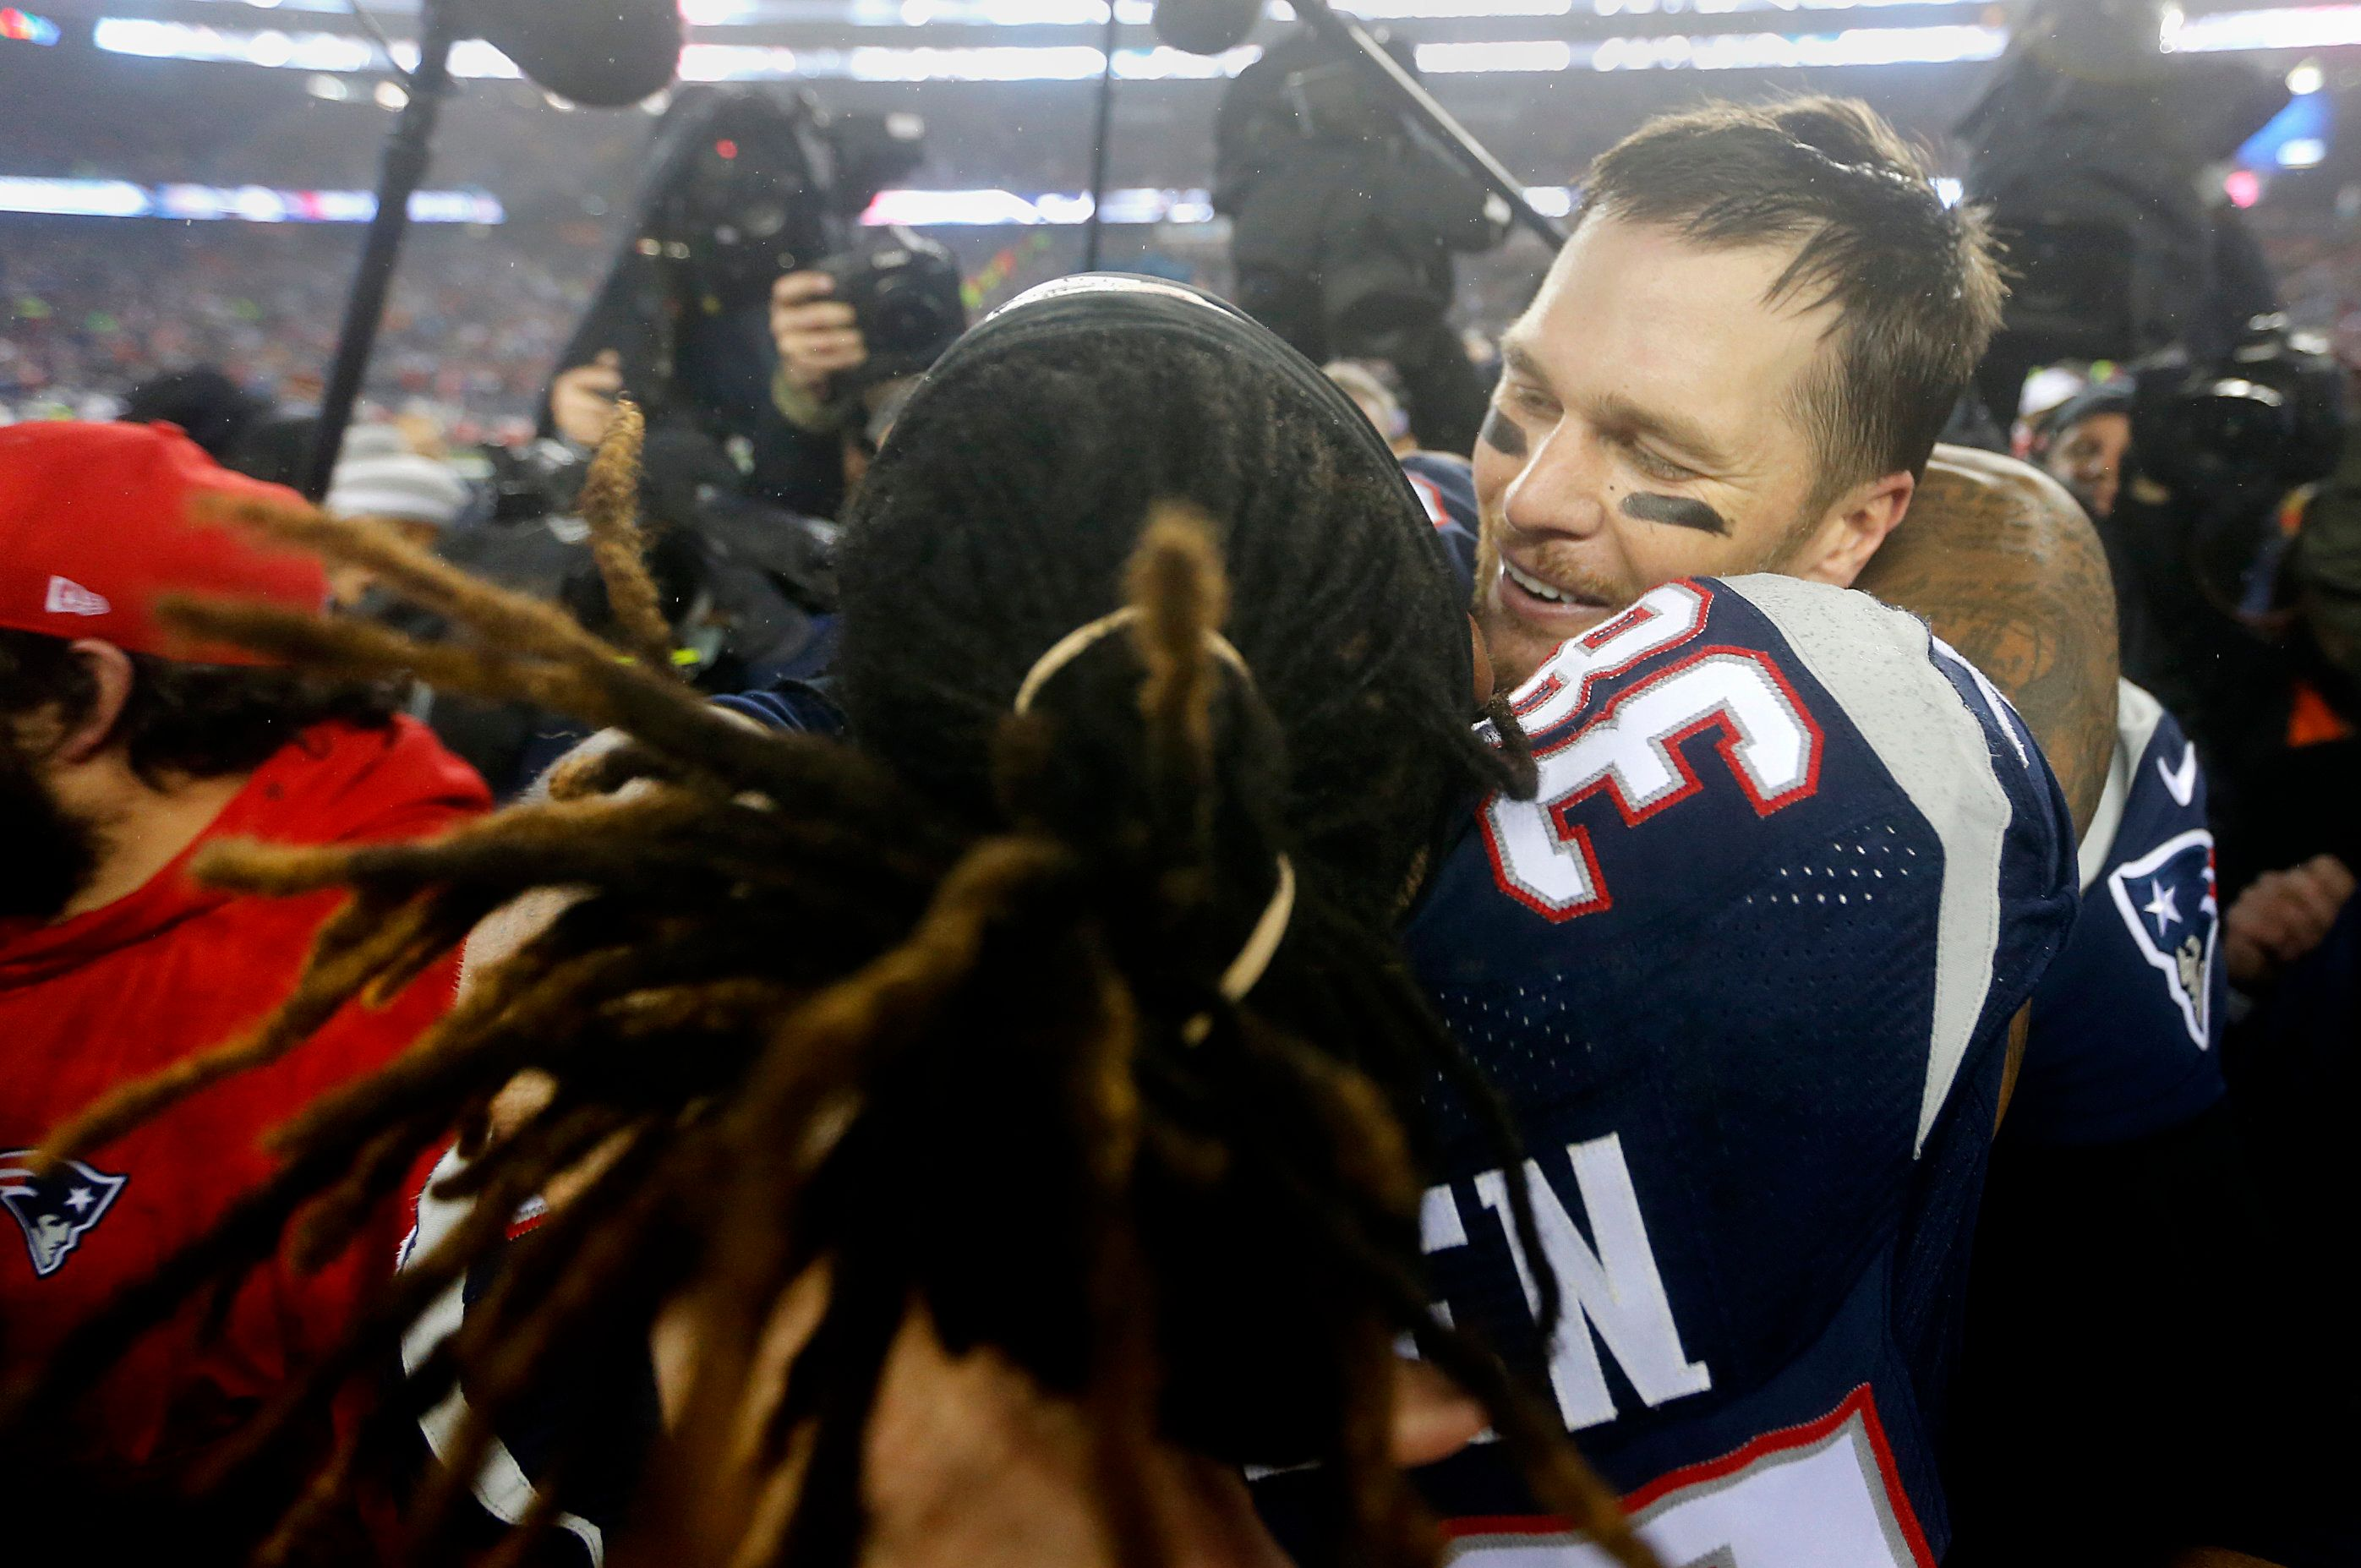 FOXBOROUGH, MA - JANUARY 22:  New England Patriots Tom Brady and Brandon Bolden celebrate after defeated the Steelers to advance to Super Bowl LI.  The New England Patriots host the Pittsburgh Steelers in the AFC Championship game at Gillette Stadium in Foxborough, Mass., on Jan. 22, 2017. (Photo by Stan Grossfeld/The Boston Globe via Getty Images)